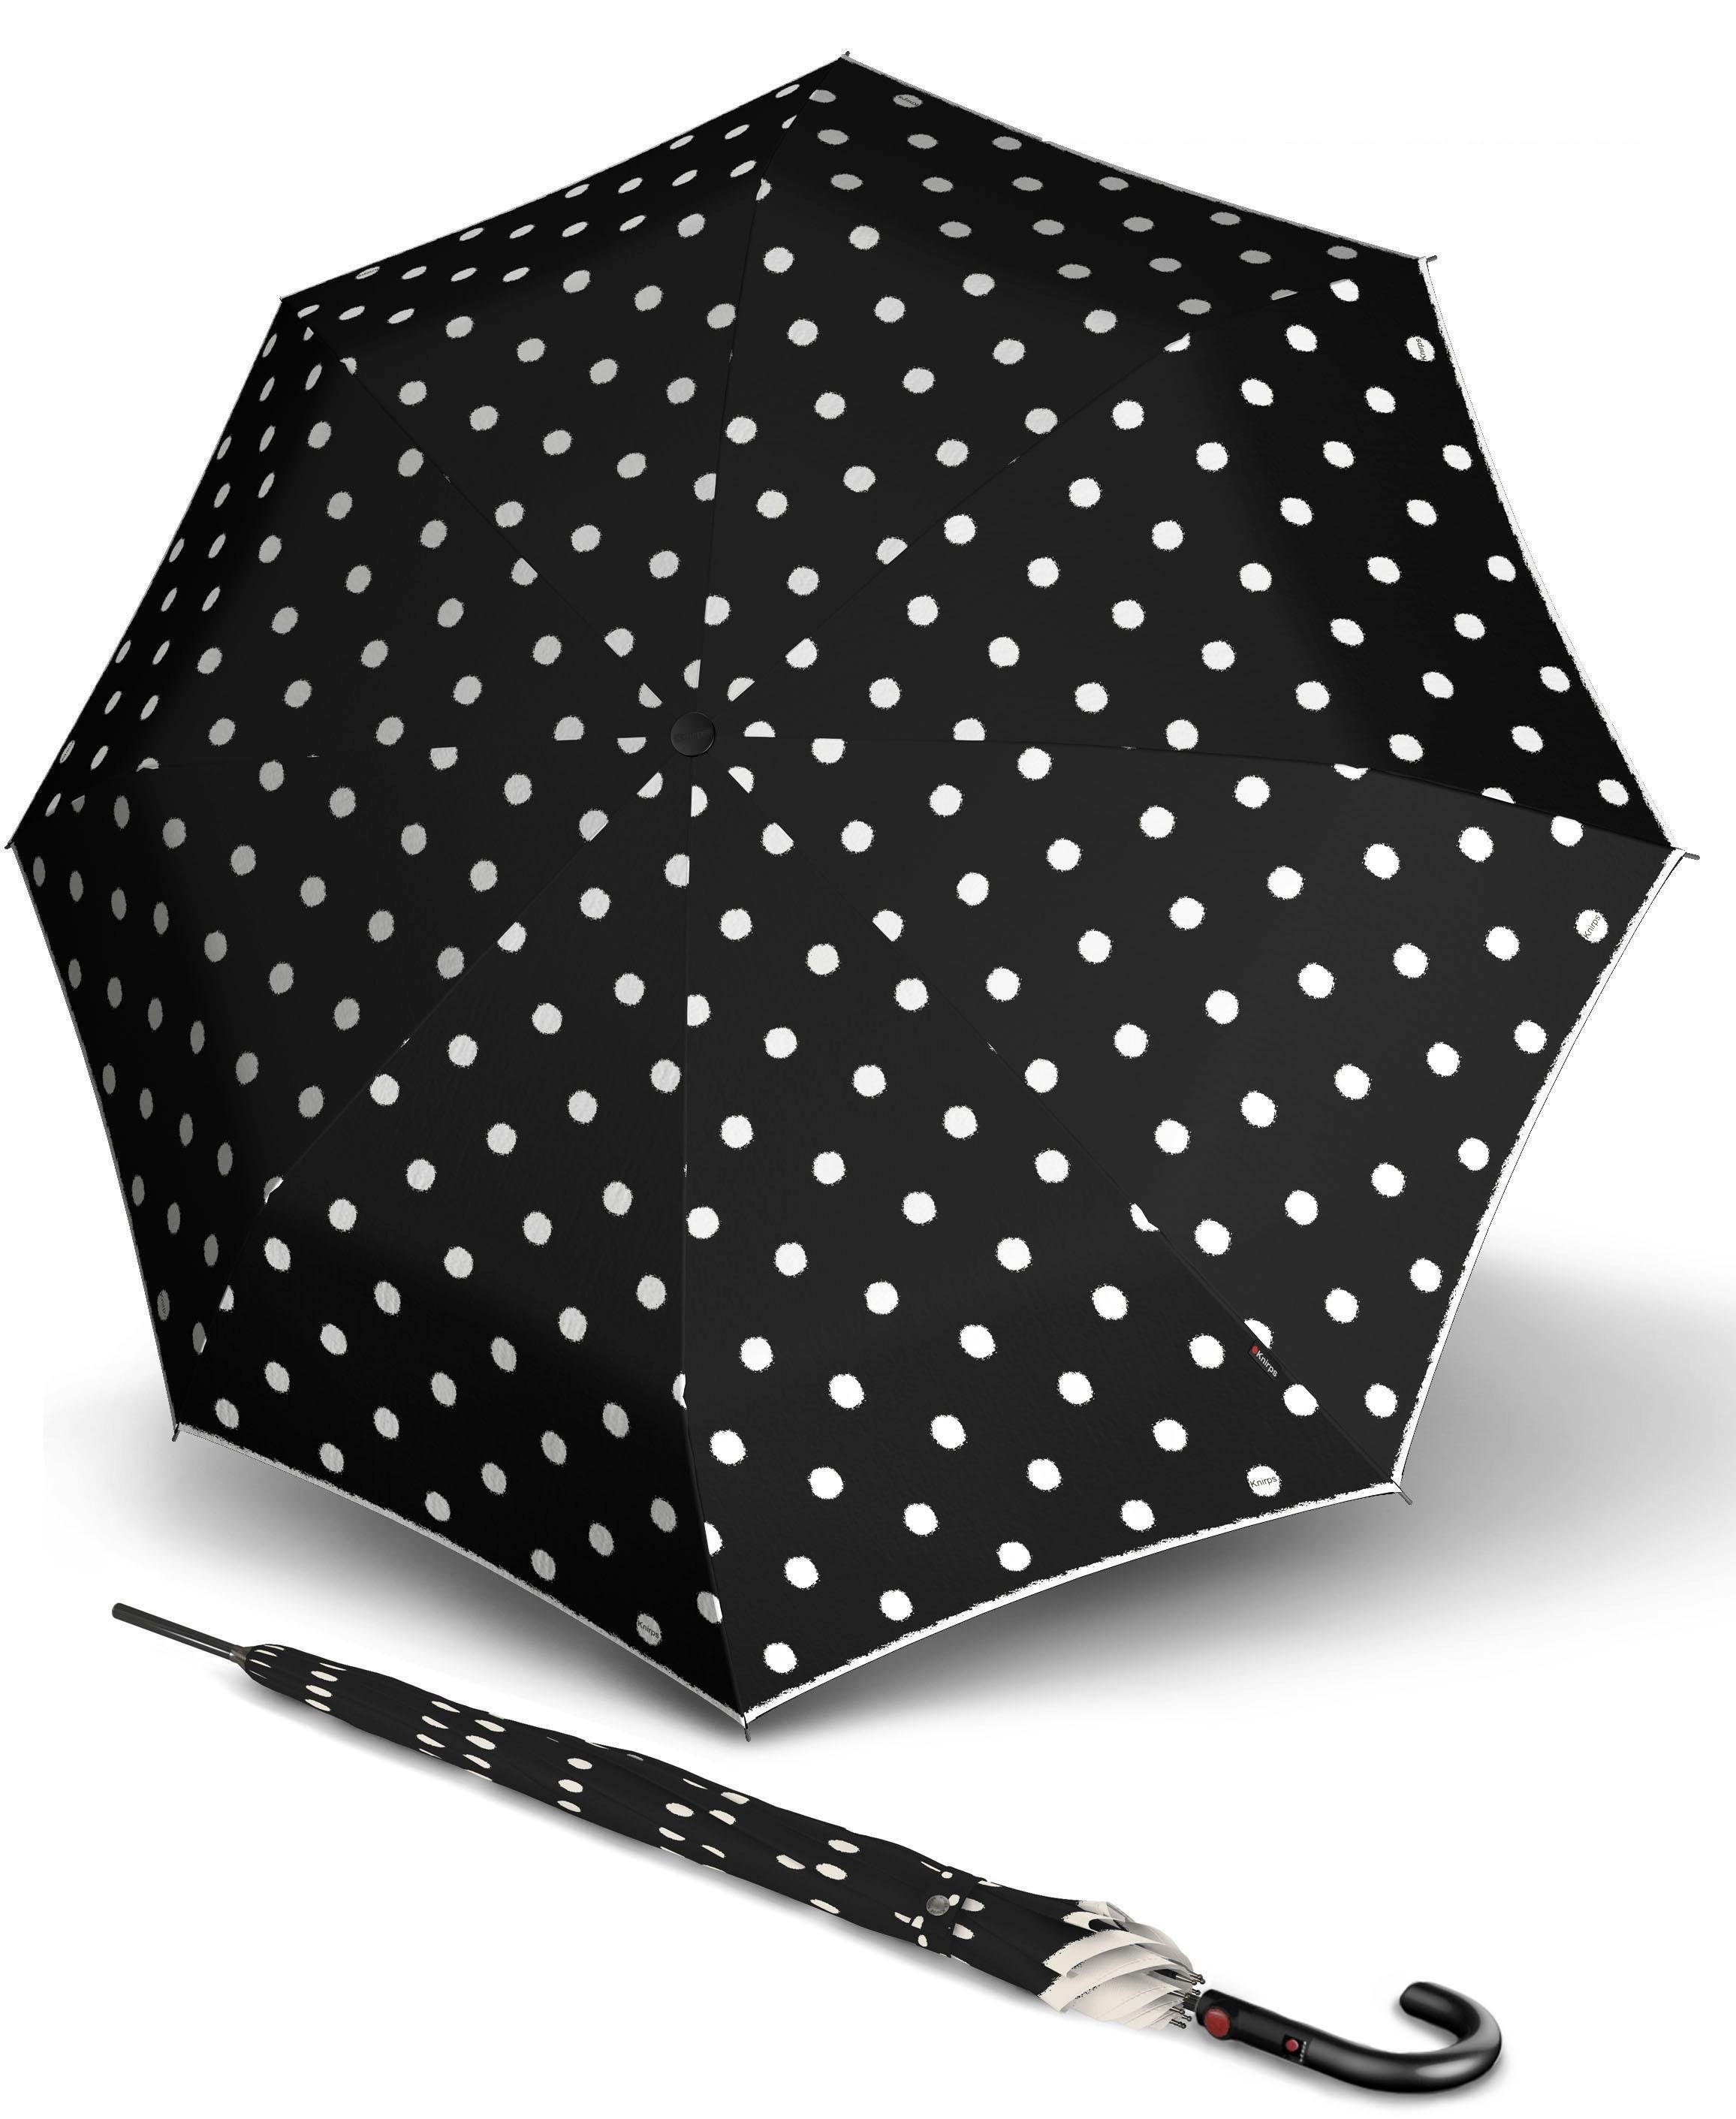 Knirps® Regenschirm - Langschirm, »T.703 Stick Automatic dot art black«